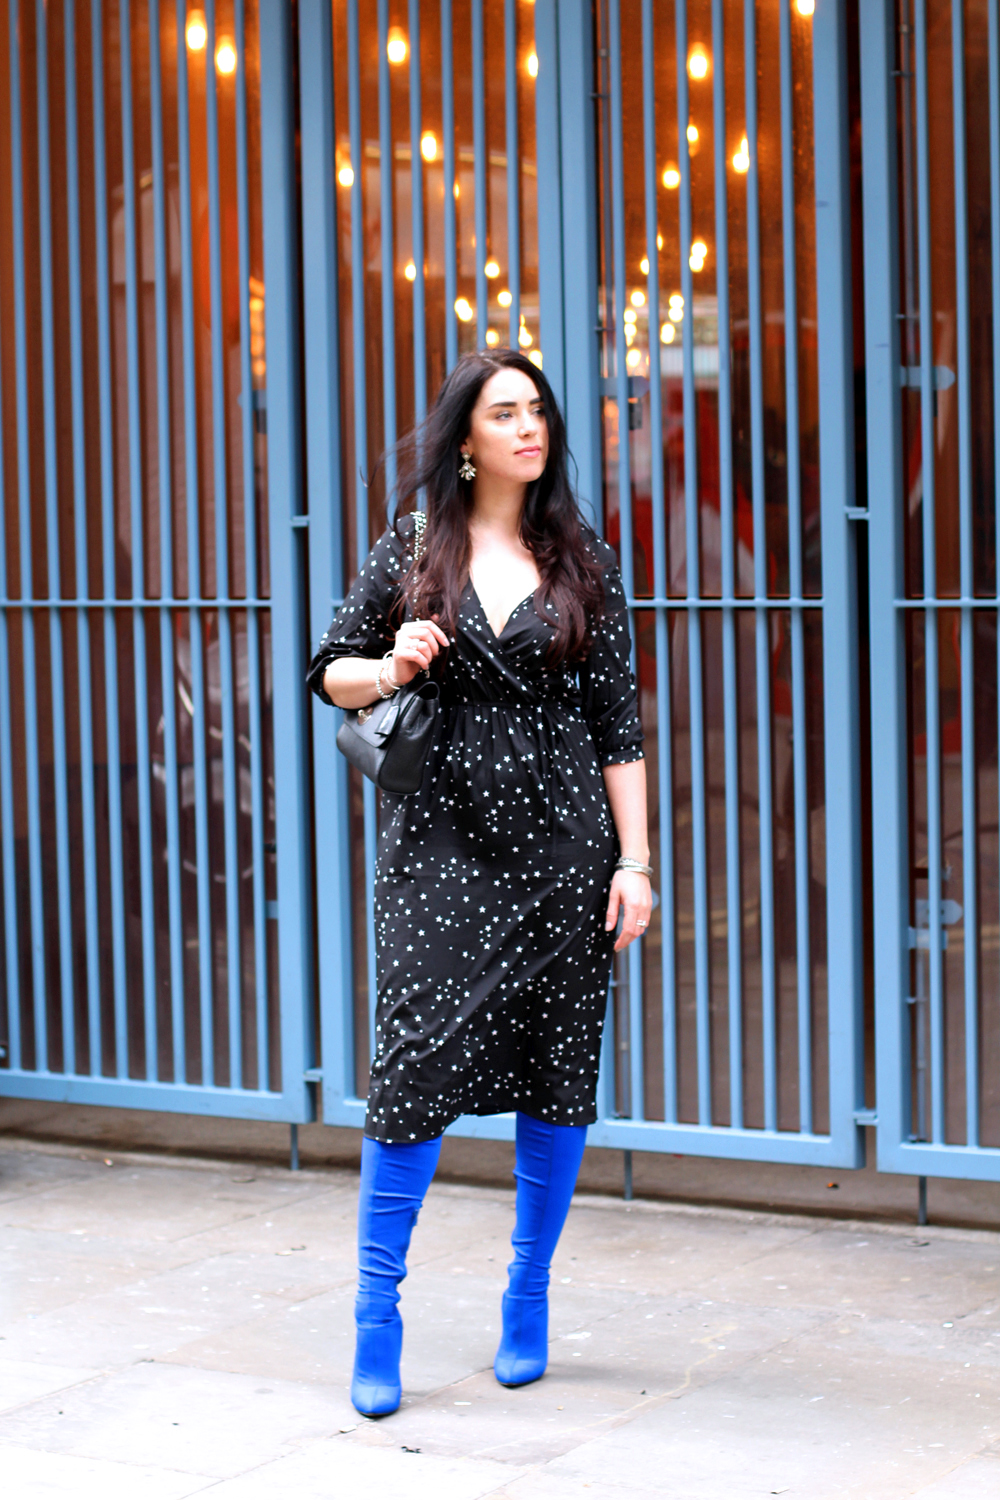 Emma Louise Layla in Boohoo star print dress and blue thigh high boots - London style blogger